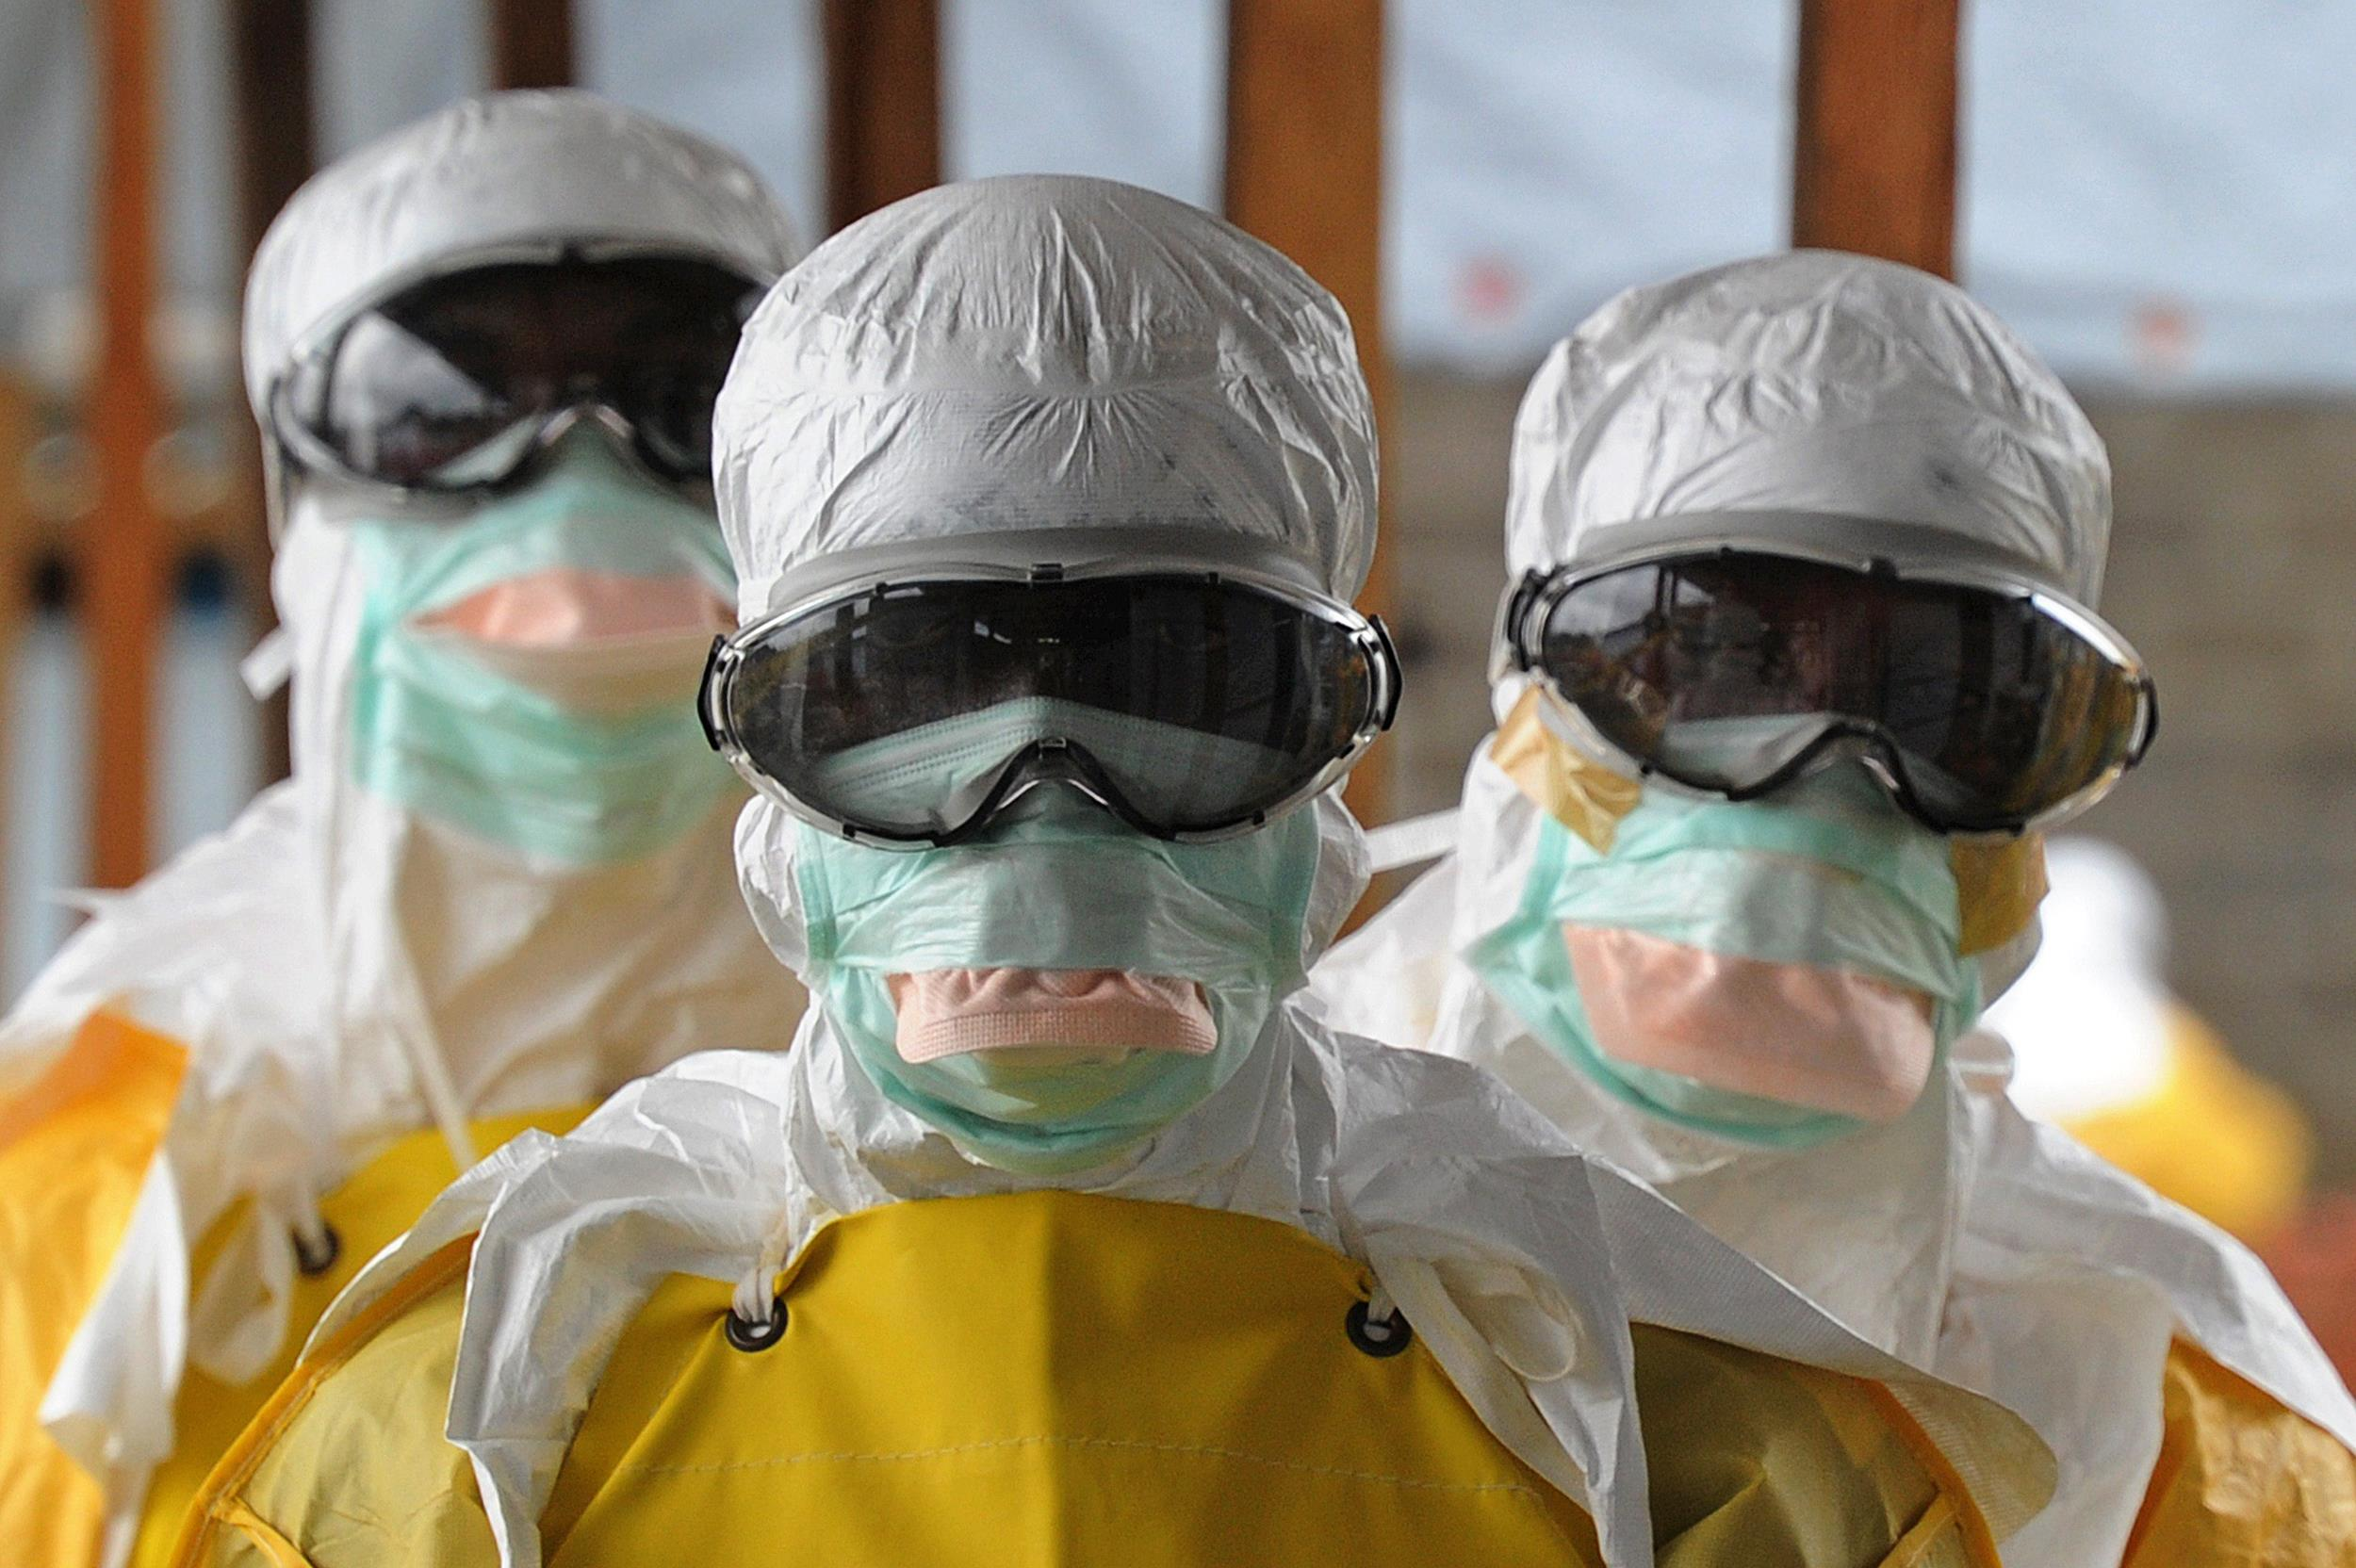 Liberia: Ebola survivor likely source of new outbreak